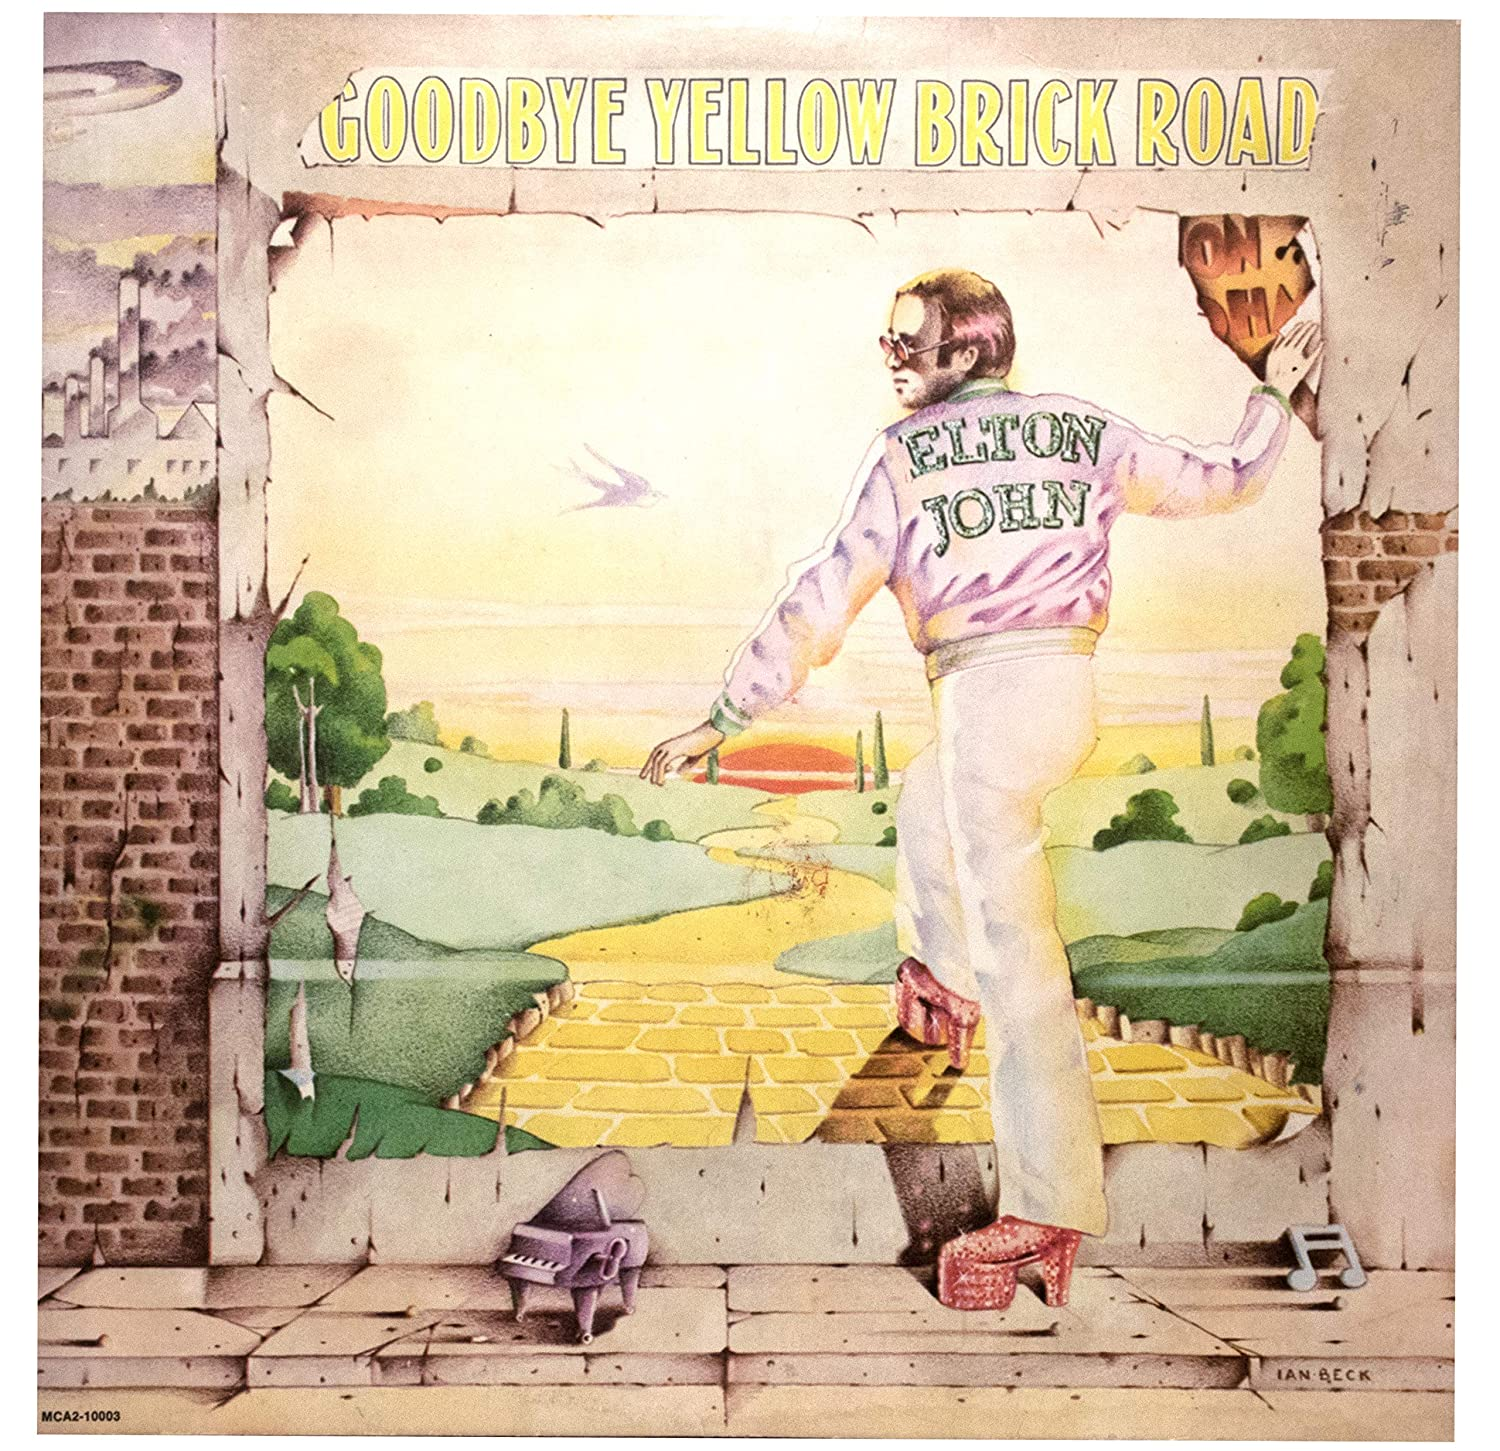 Matters Of Vinyl Importance podcast .Alan Pell chats to award winning musician, engineer and mixer David Hentchel about the making of the Elton John classic album 'Goodbye Yellow Brick Road'.